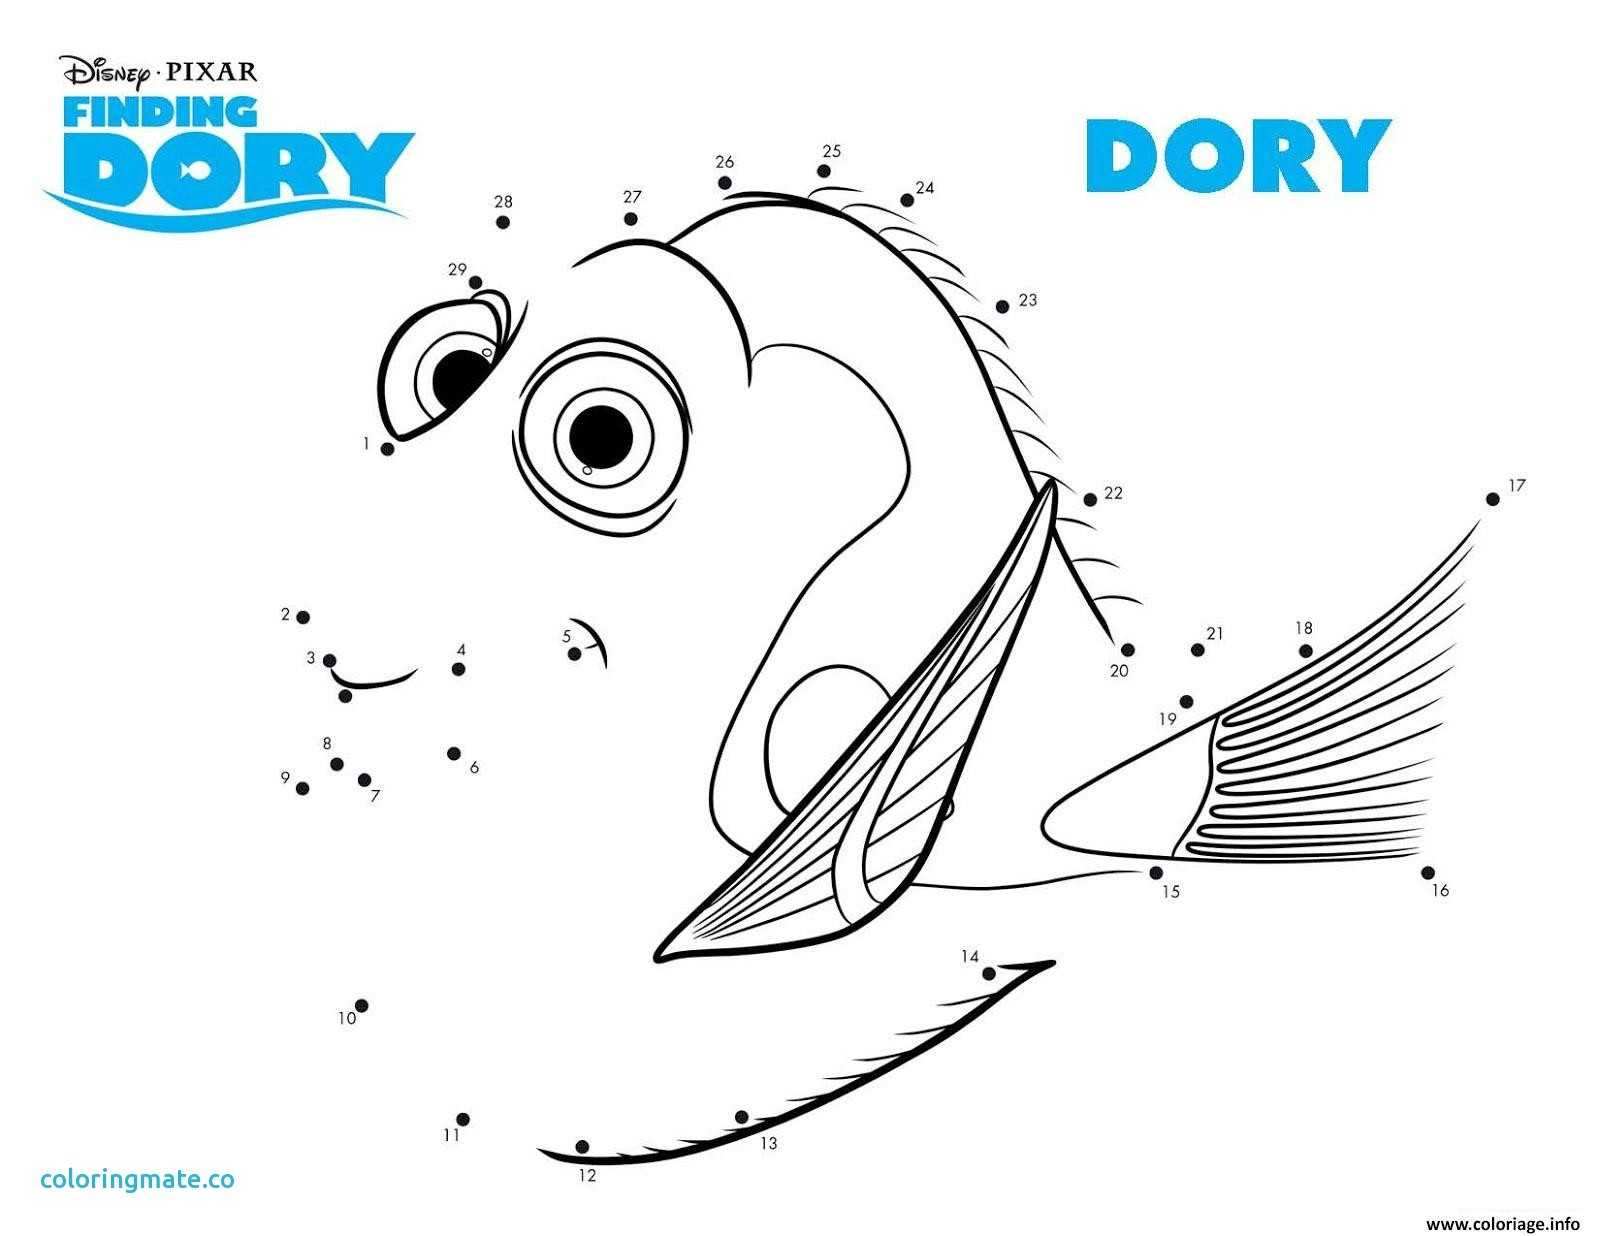 Finding Nemo Worksheet or Ungewöhnlich Coloriage Dory Poisson Chirurgie Bleu Bilder